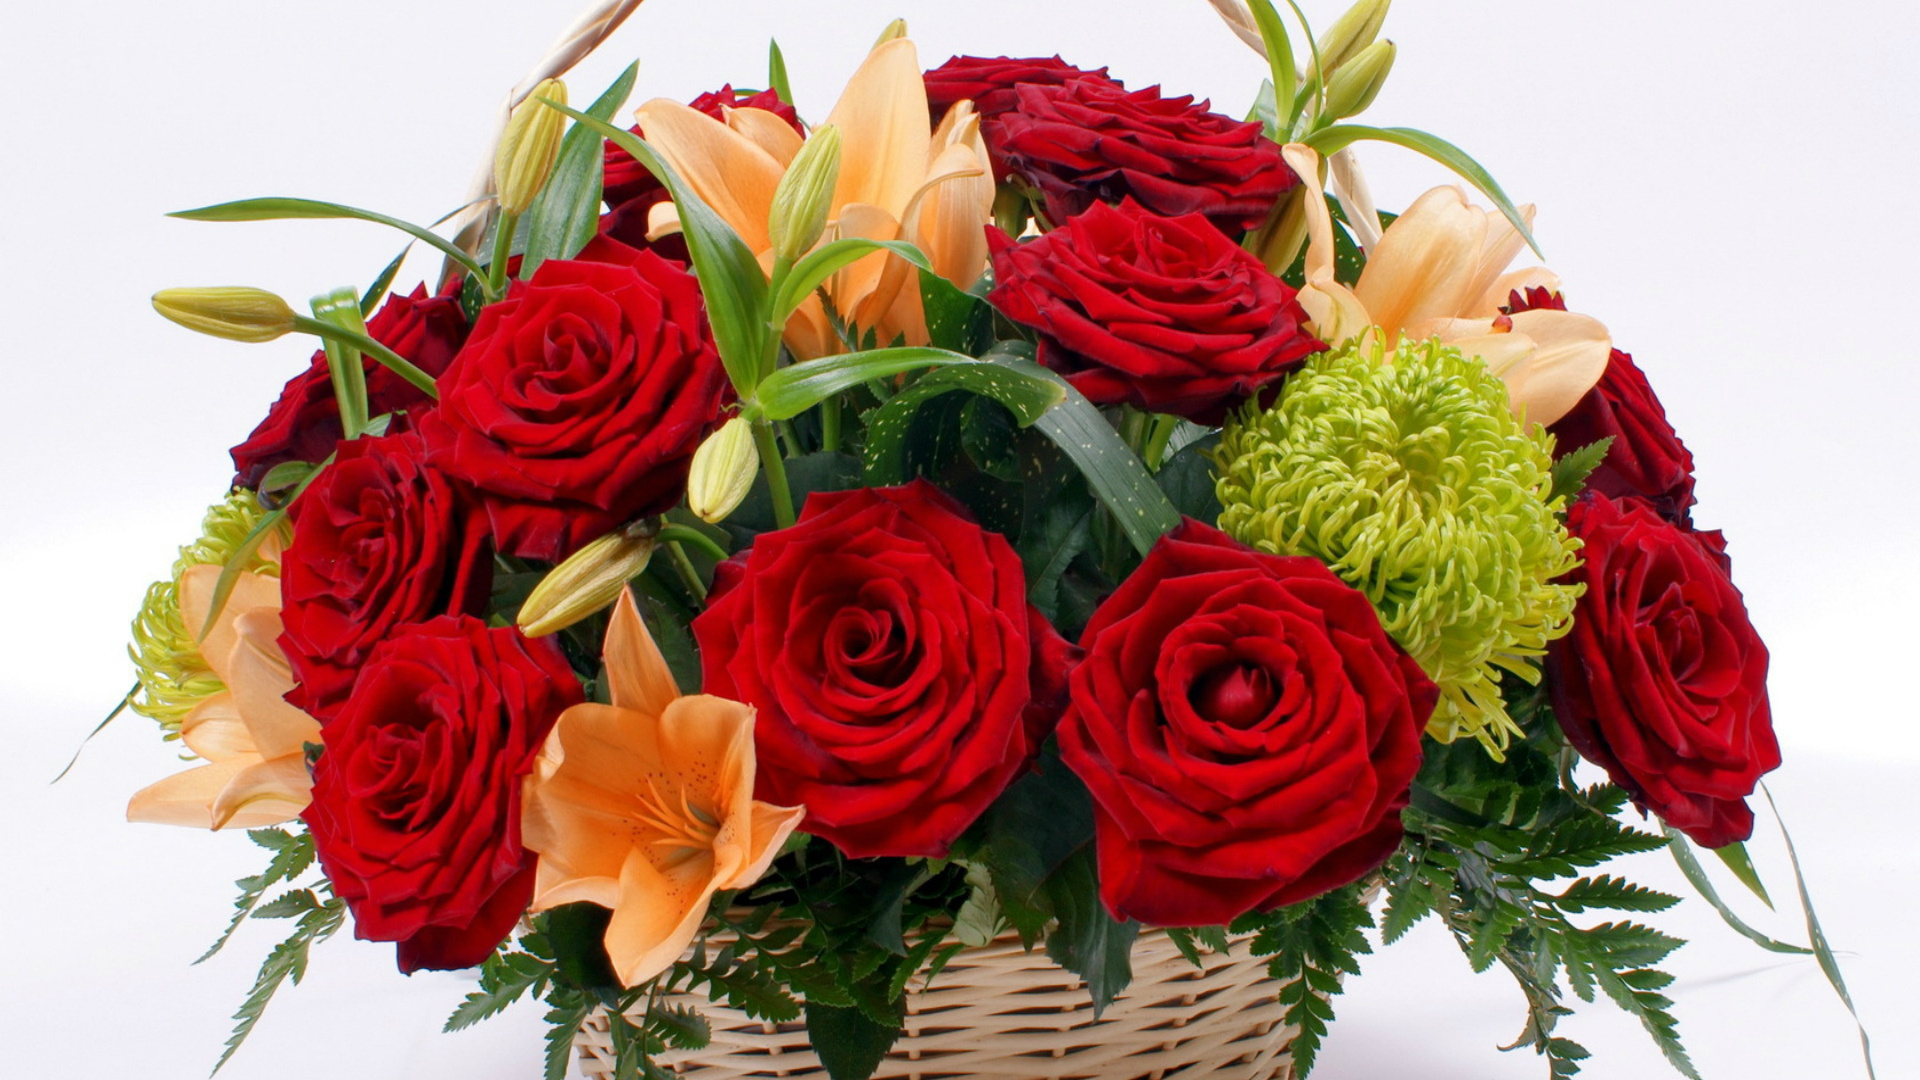 Basket With Flowers wallpaper picture